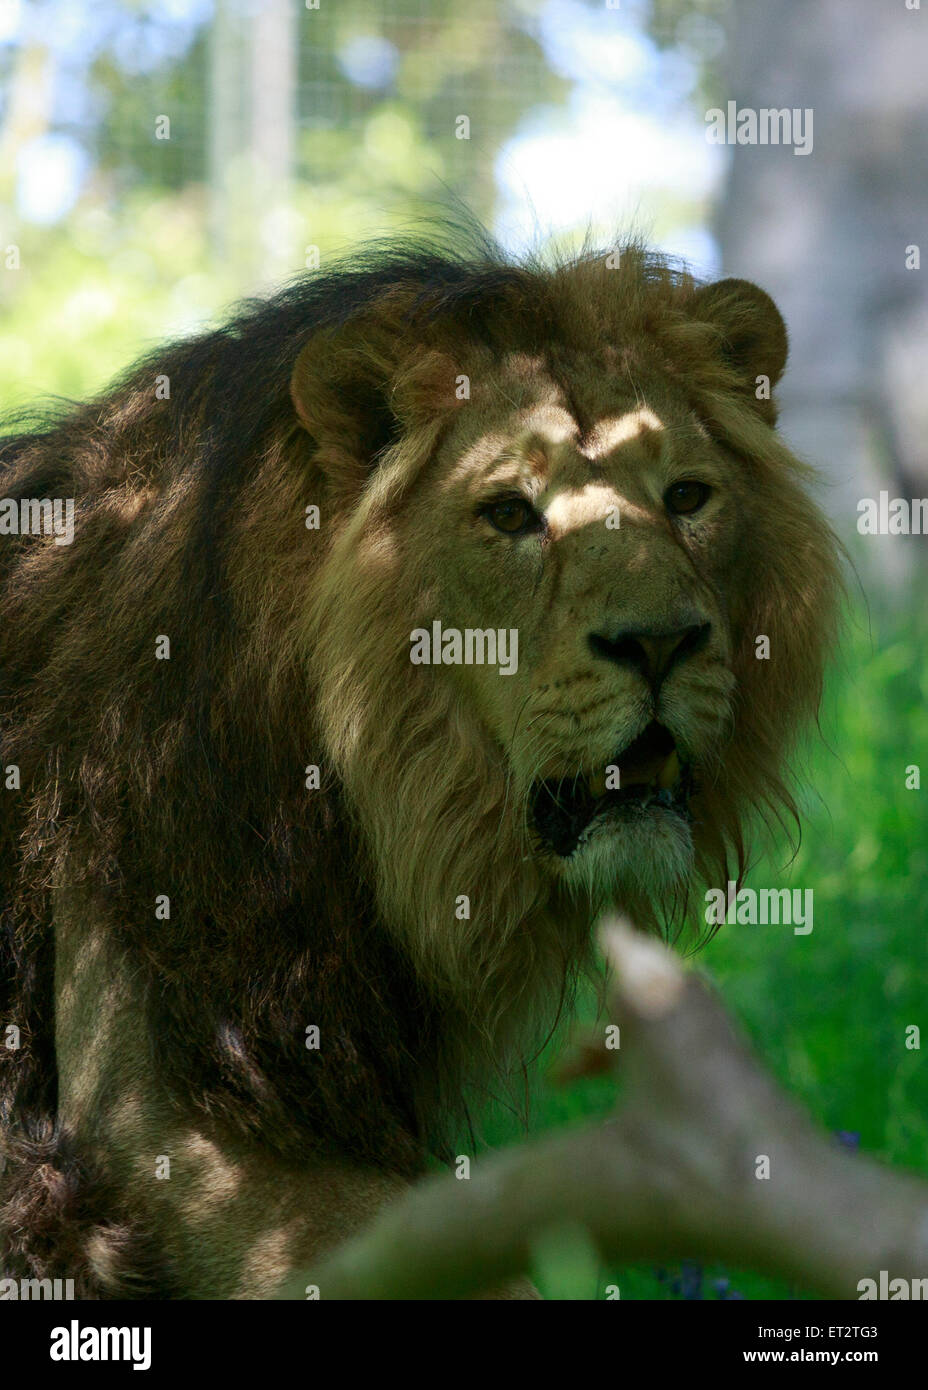 Edinburgh. UK. 11 June. The new female Asiatic lion, Roberta is introduced to Jay (male) in Edinburgh Zoo  Pako - Stock Image